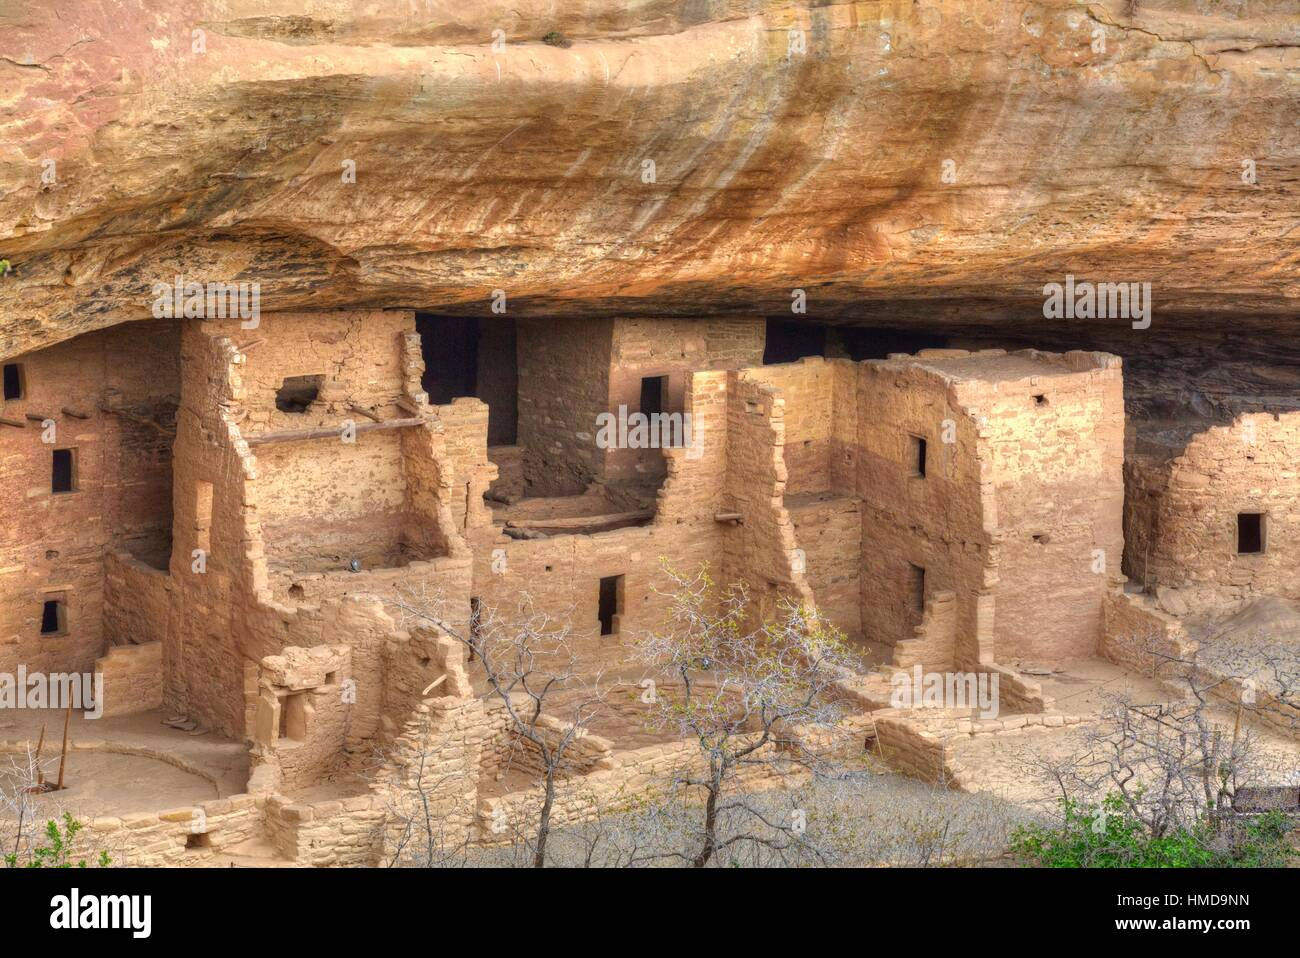 Anasazi Ruins, Spruce Tree House, Mesa Verde National Park, UNESCO World Heritage Site, 600 A.D. - 1,300 A.D., Colorado, - Stock Image